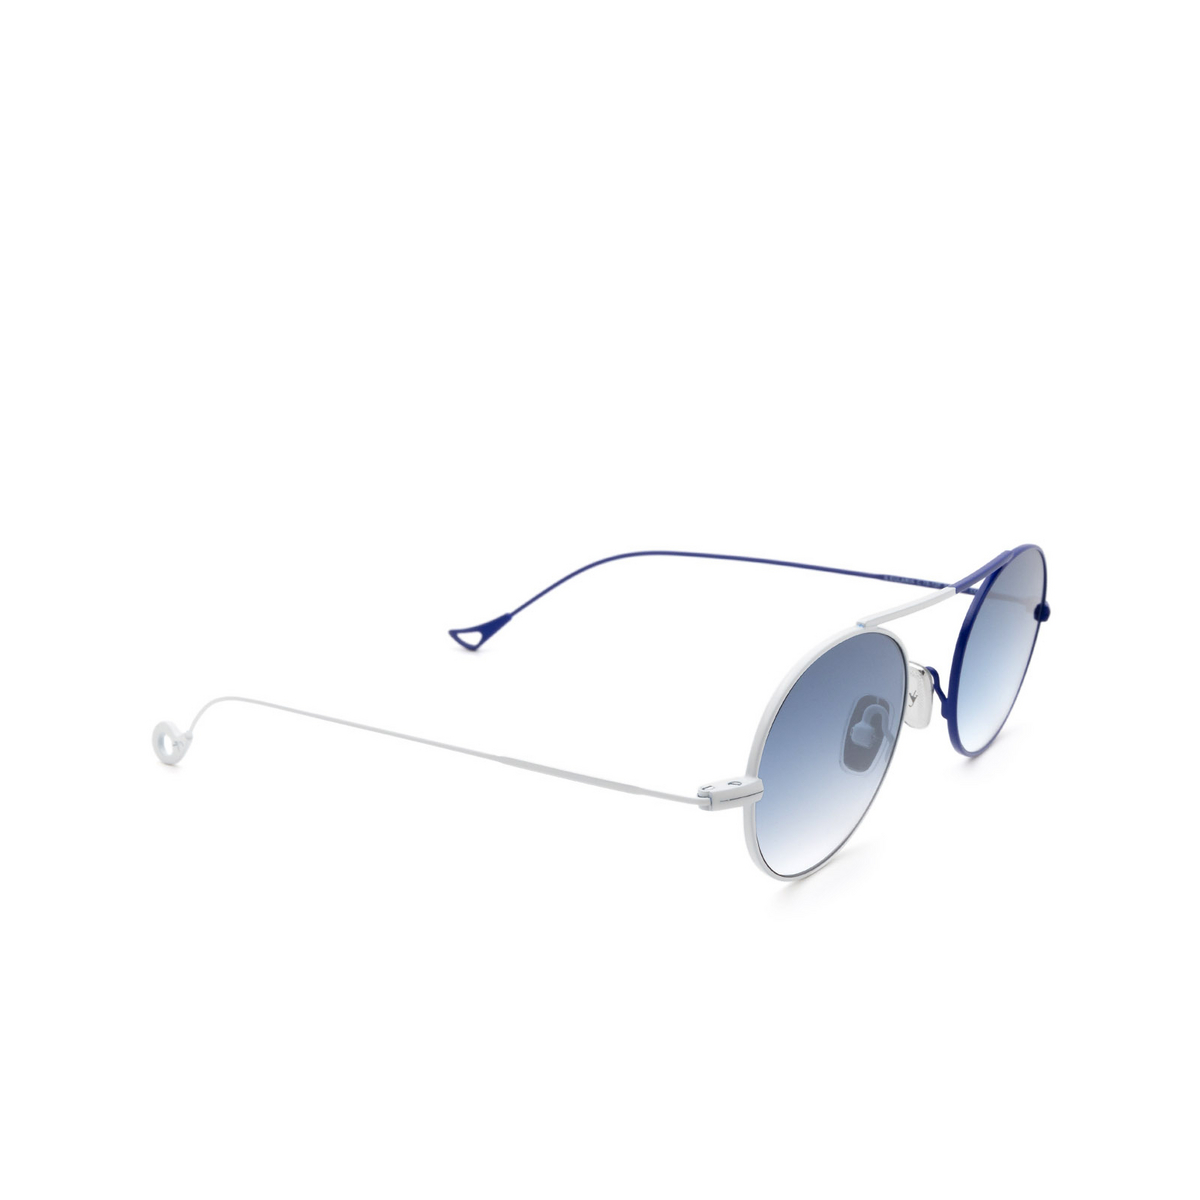 Eyepetizer® Oval Sunglasses: S.eularia color White & Blue C.19-12F - three-quarters view.